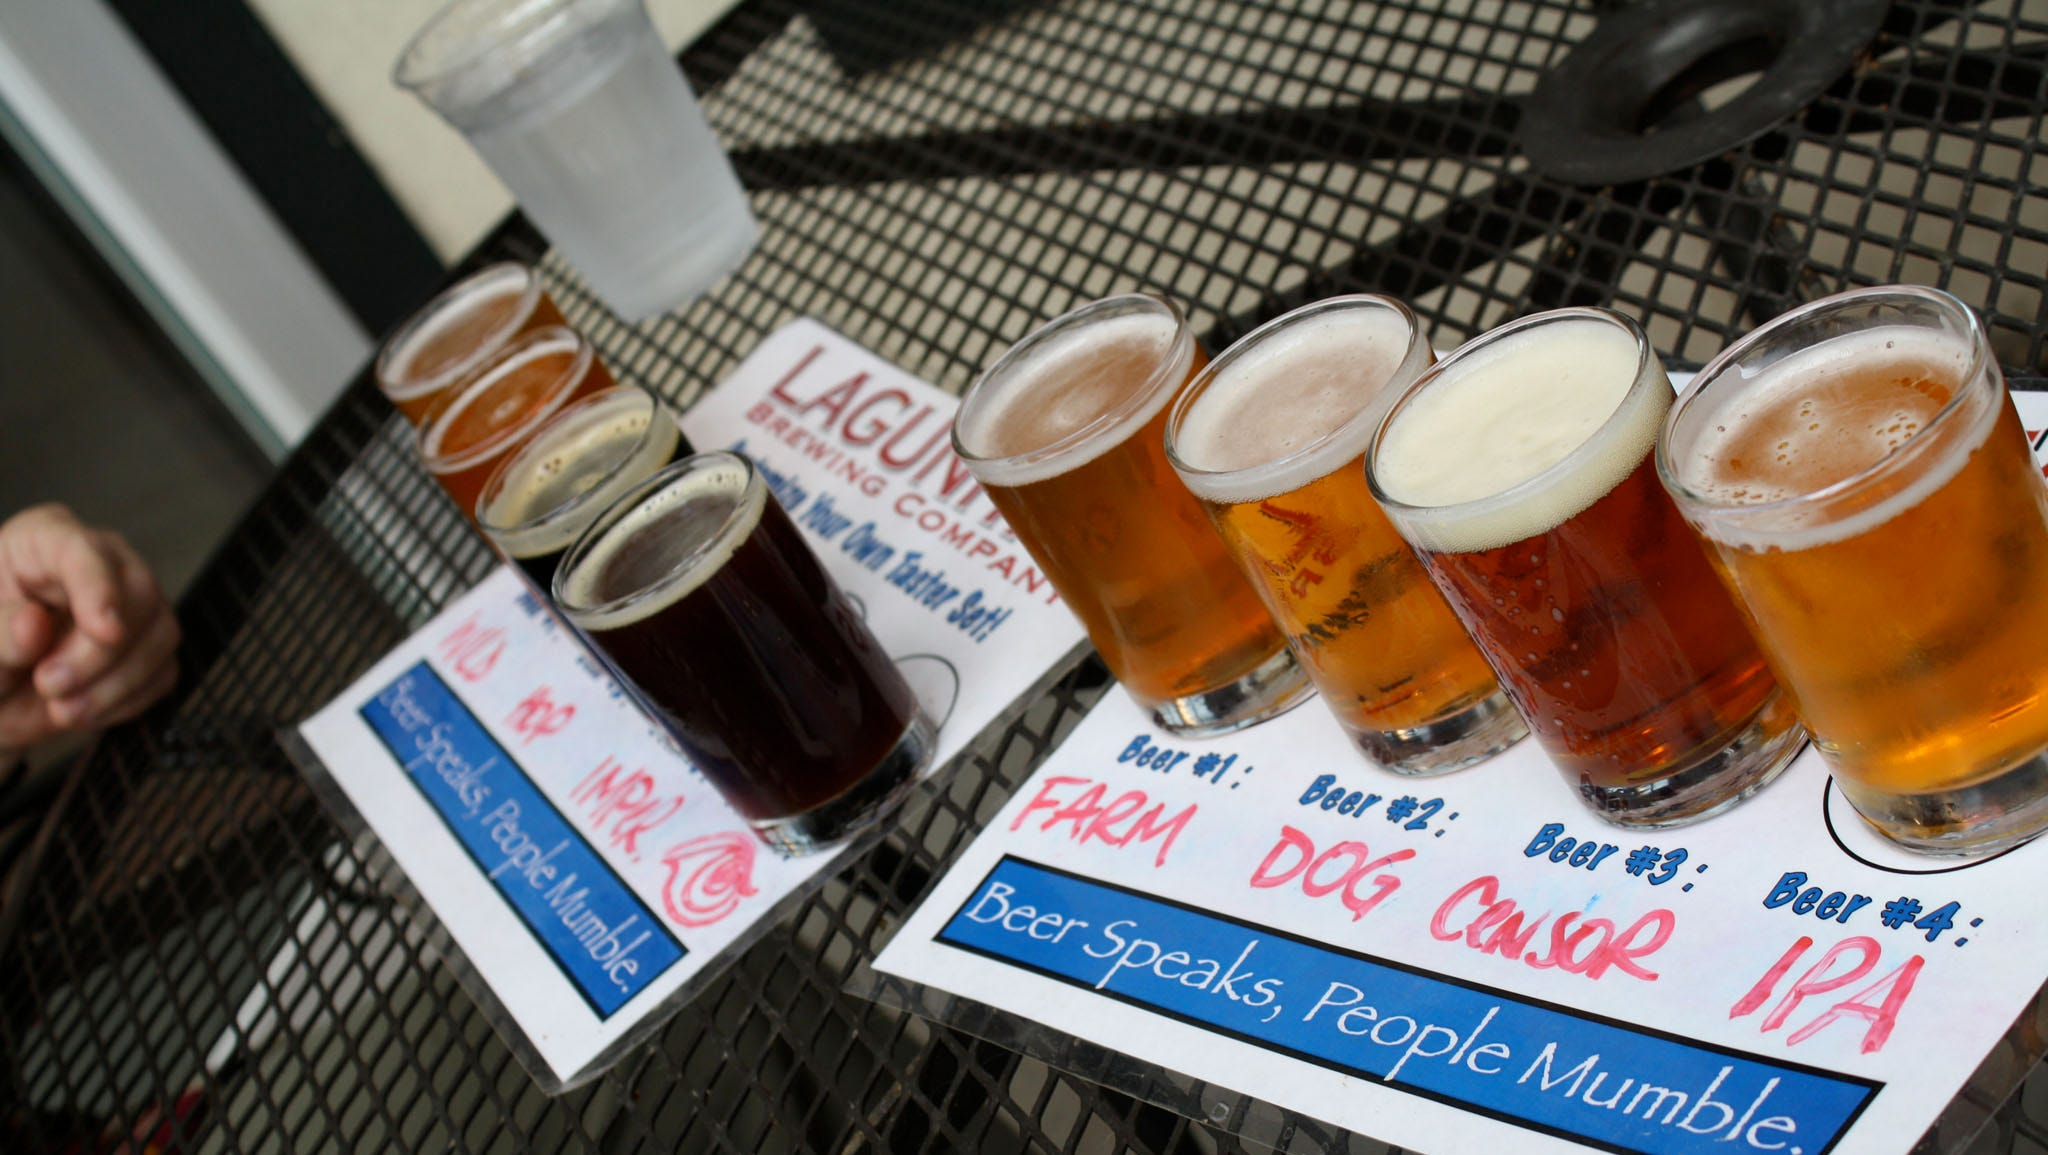 "Lagunitas Brewing Company, Petaluma, Calif.: Founded in 1993, Lagunitas Brewing Company has a core of supportive beer lovers who want to nurture the creation of consistently good beer. The brewery is willing to do anything and is ""capable of making beer out of goat's milk, brambles, and asphalt on the surface of the moon, if need be,"" according to its Facebook page. And it's the brewery's dedication to experimentation that has won over beer lovers across the company. ""Tony Magee's vision and 'the glass is always half full' attitude toward life is reflected in his beer,"" says Liz Garibay of the blog Tales, Taverns, & Towns. ""I don't think I've ever had a Lagunitas beer I didn't like."" The California-based company recently made an announcement that it would be opening a 250,000-barrel-a-year facility in Chicago in order to cater to the Eastern U.S. With creative brews, passionate employees, and a commitment to serve, Lagunitas is definitely one of the best."